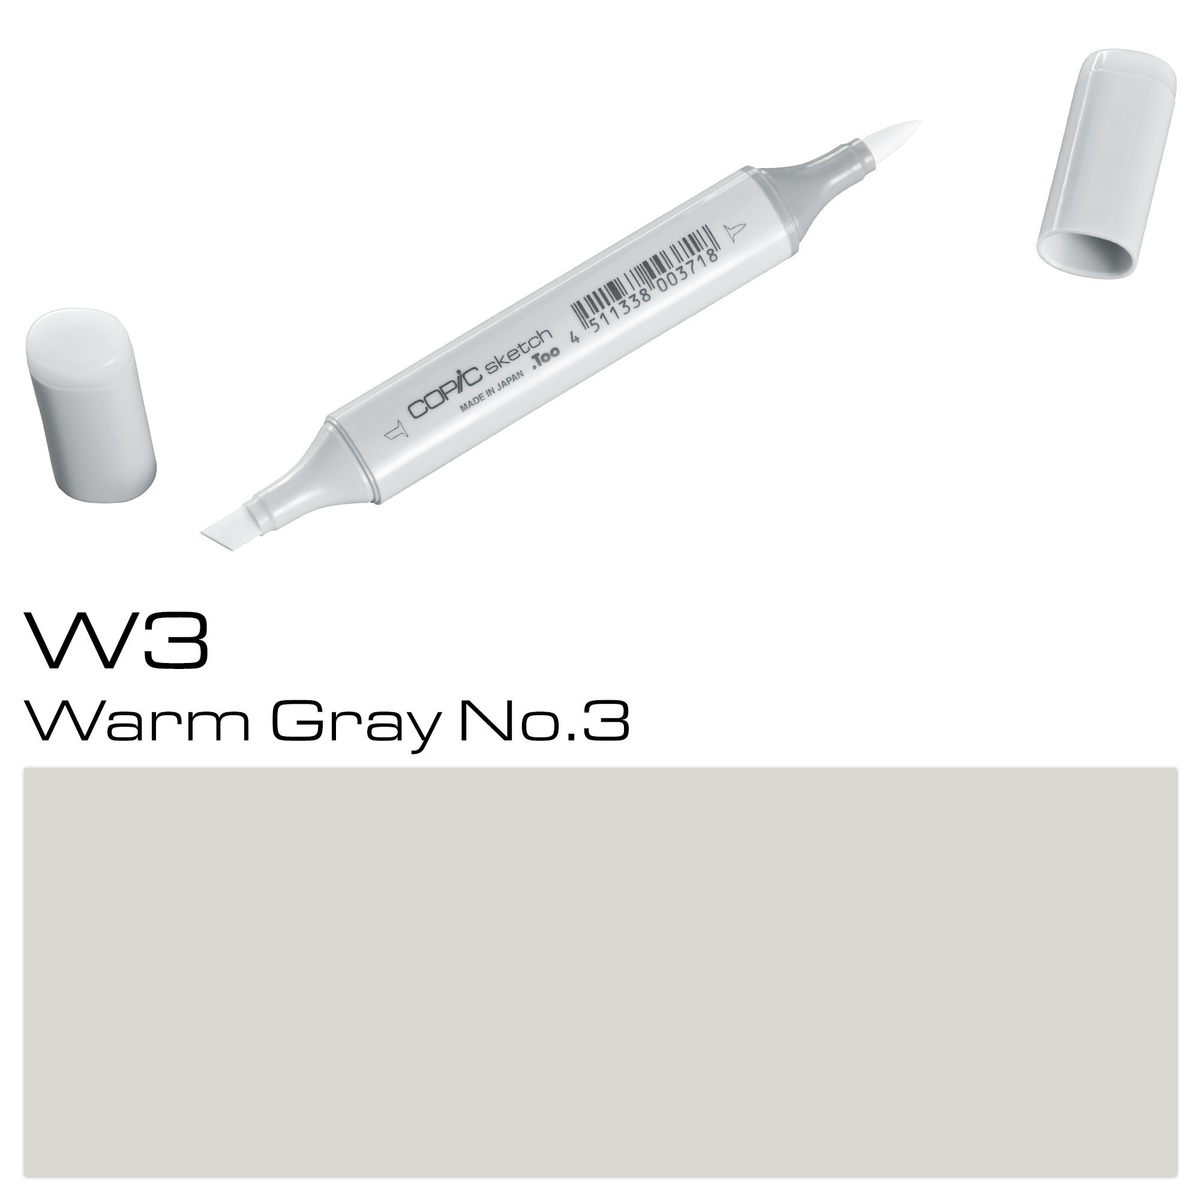 Copic Sketch W 3 warm gray